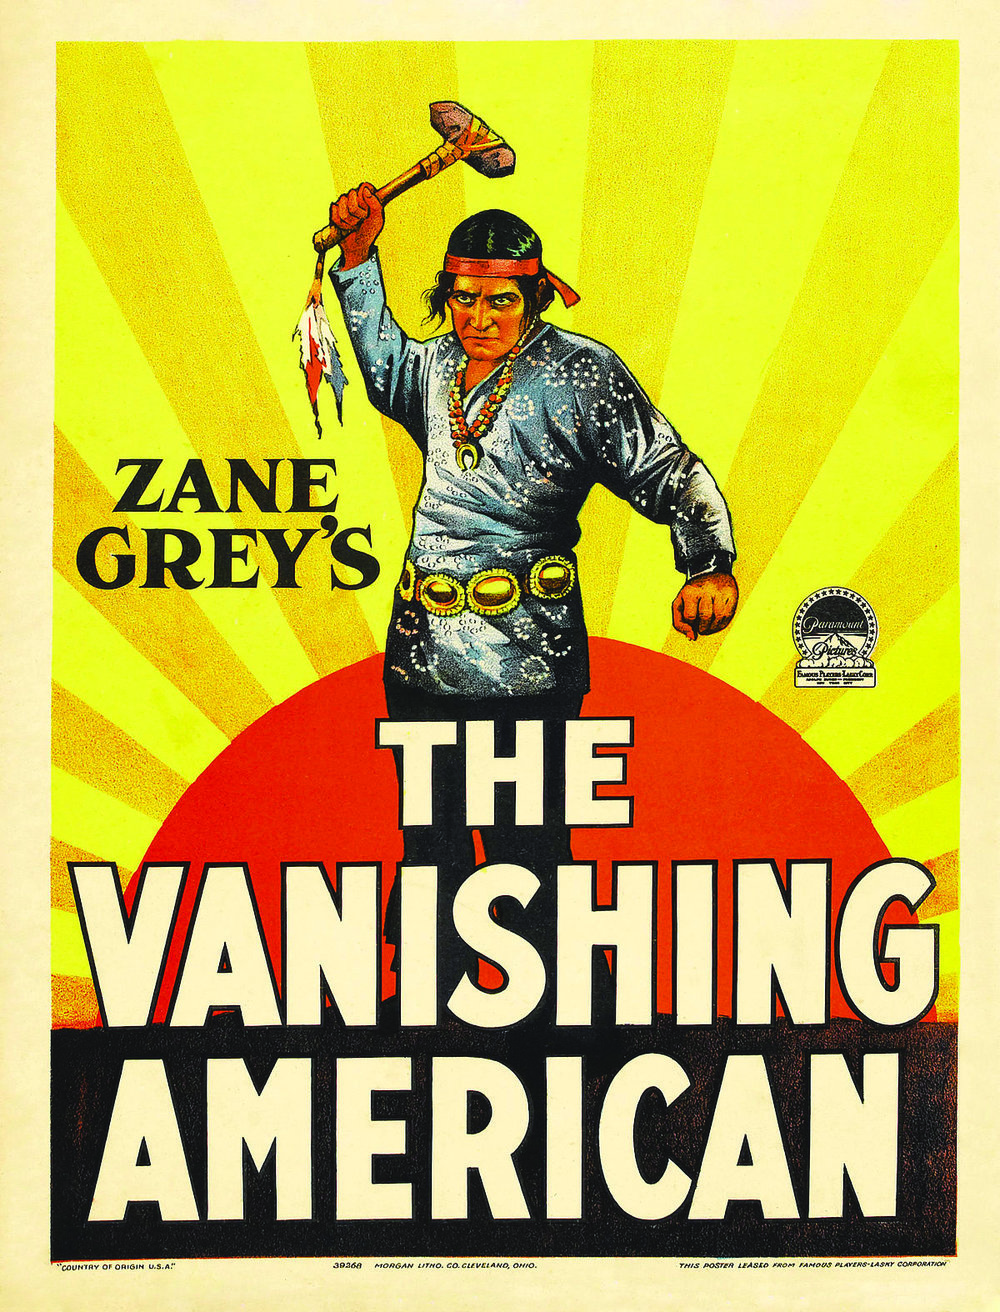 Poster_-_Vanishing_American,_The_(1925)_01_Crisco_restoration.jpg